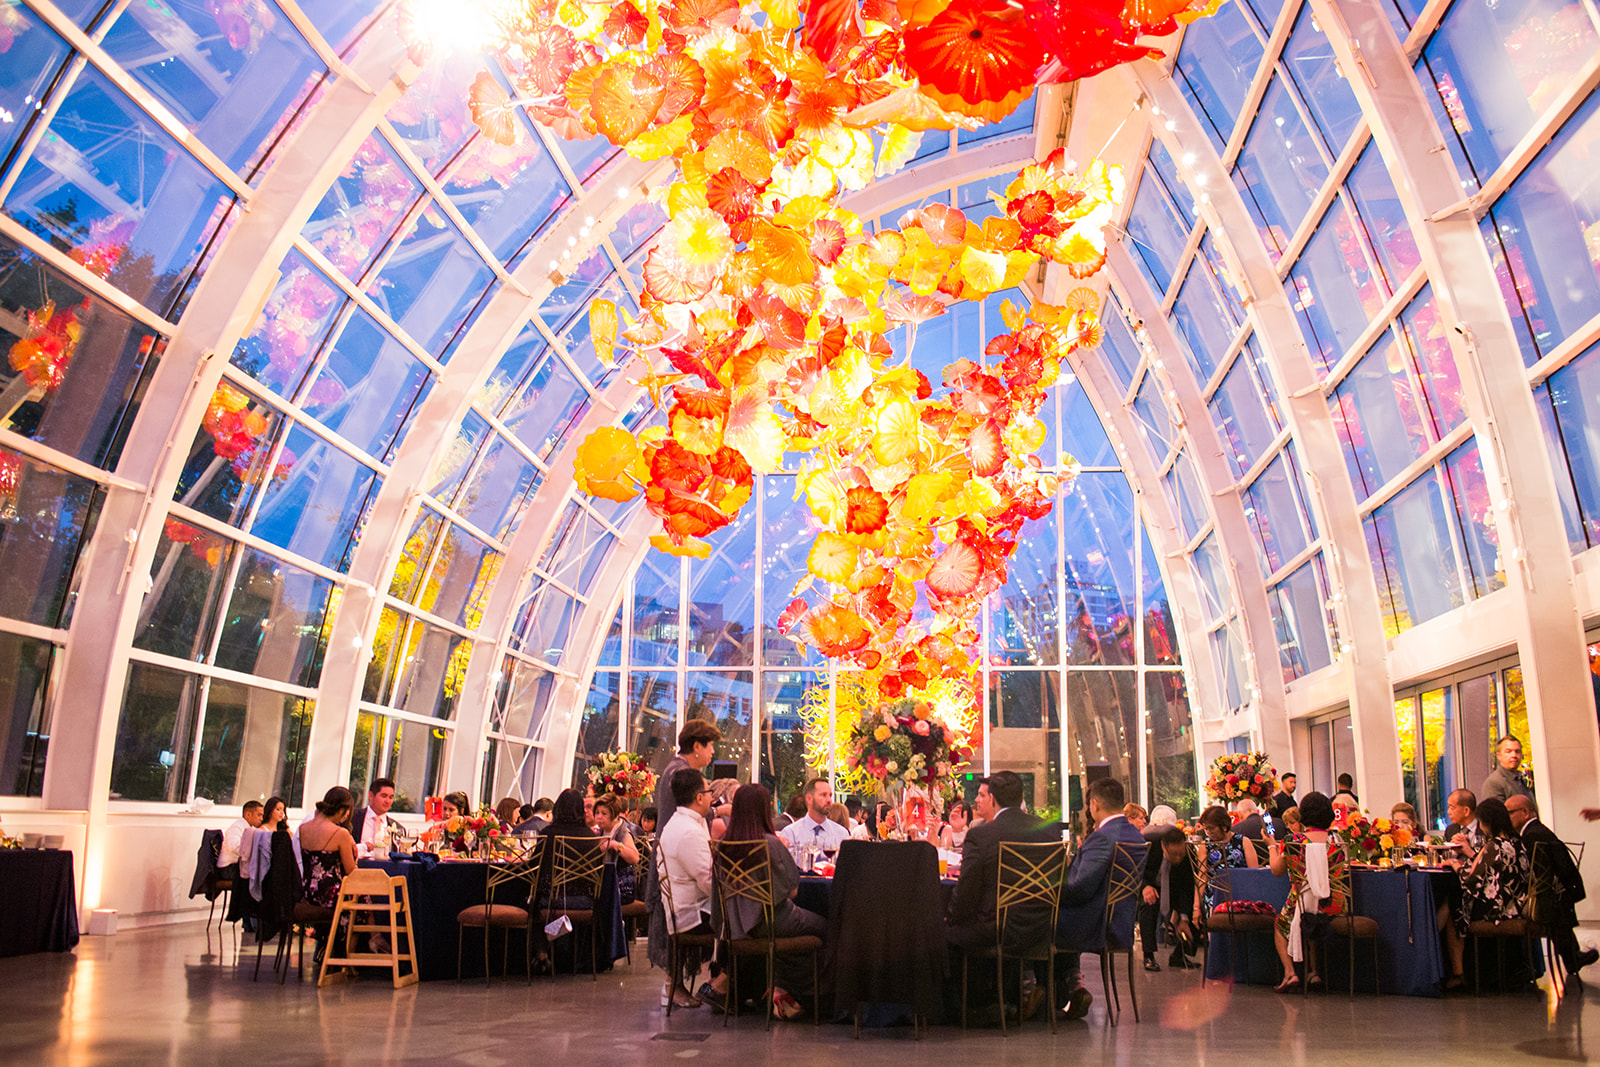 Evening at a fall wedding reception in the Chilhuly glass house